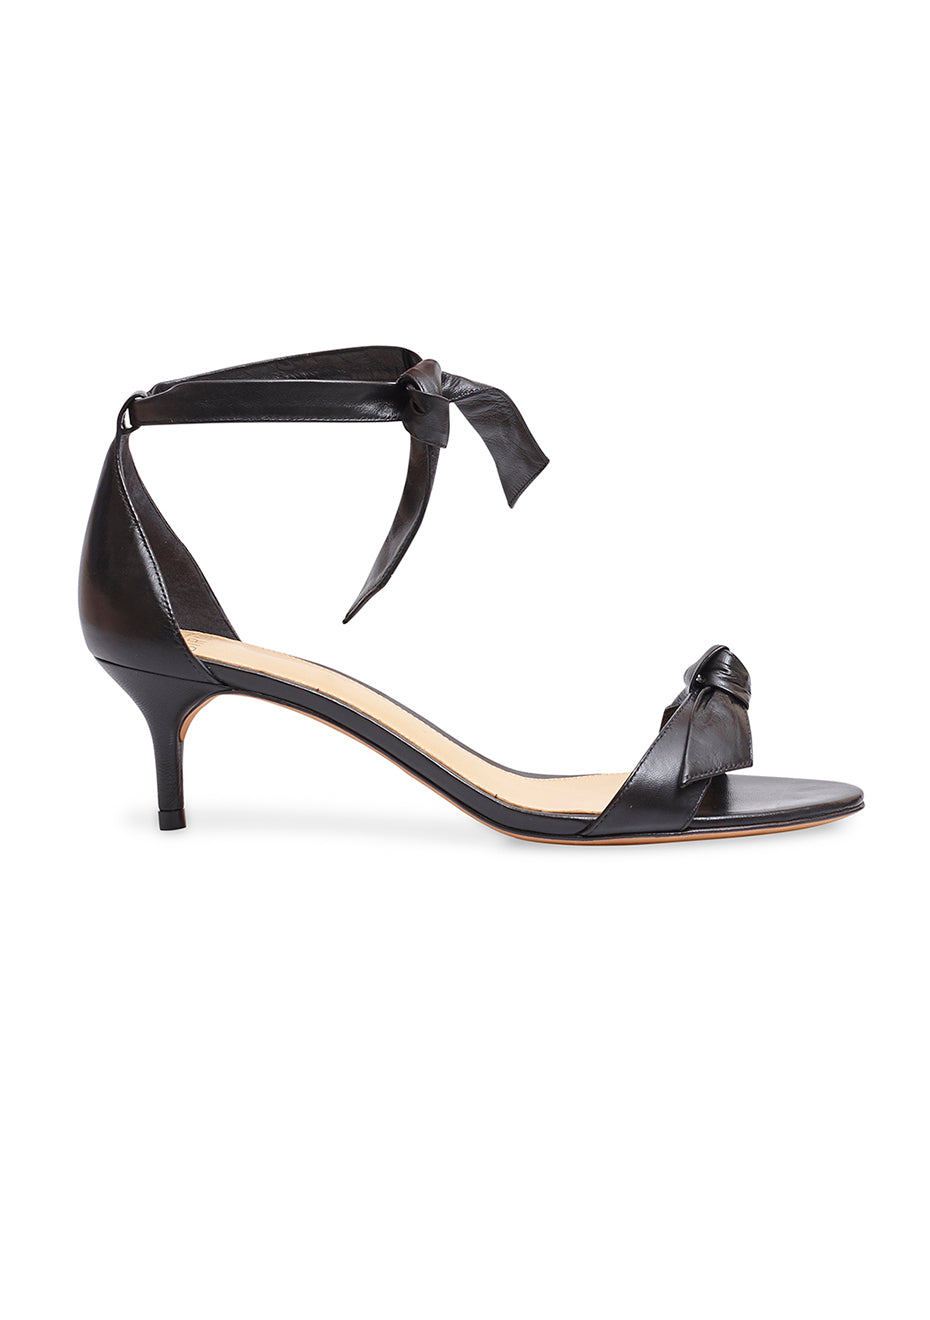 Clarita Black Leather Sandals